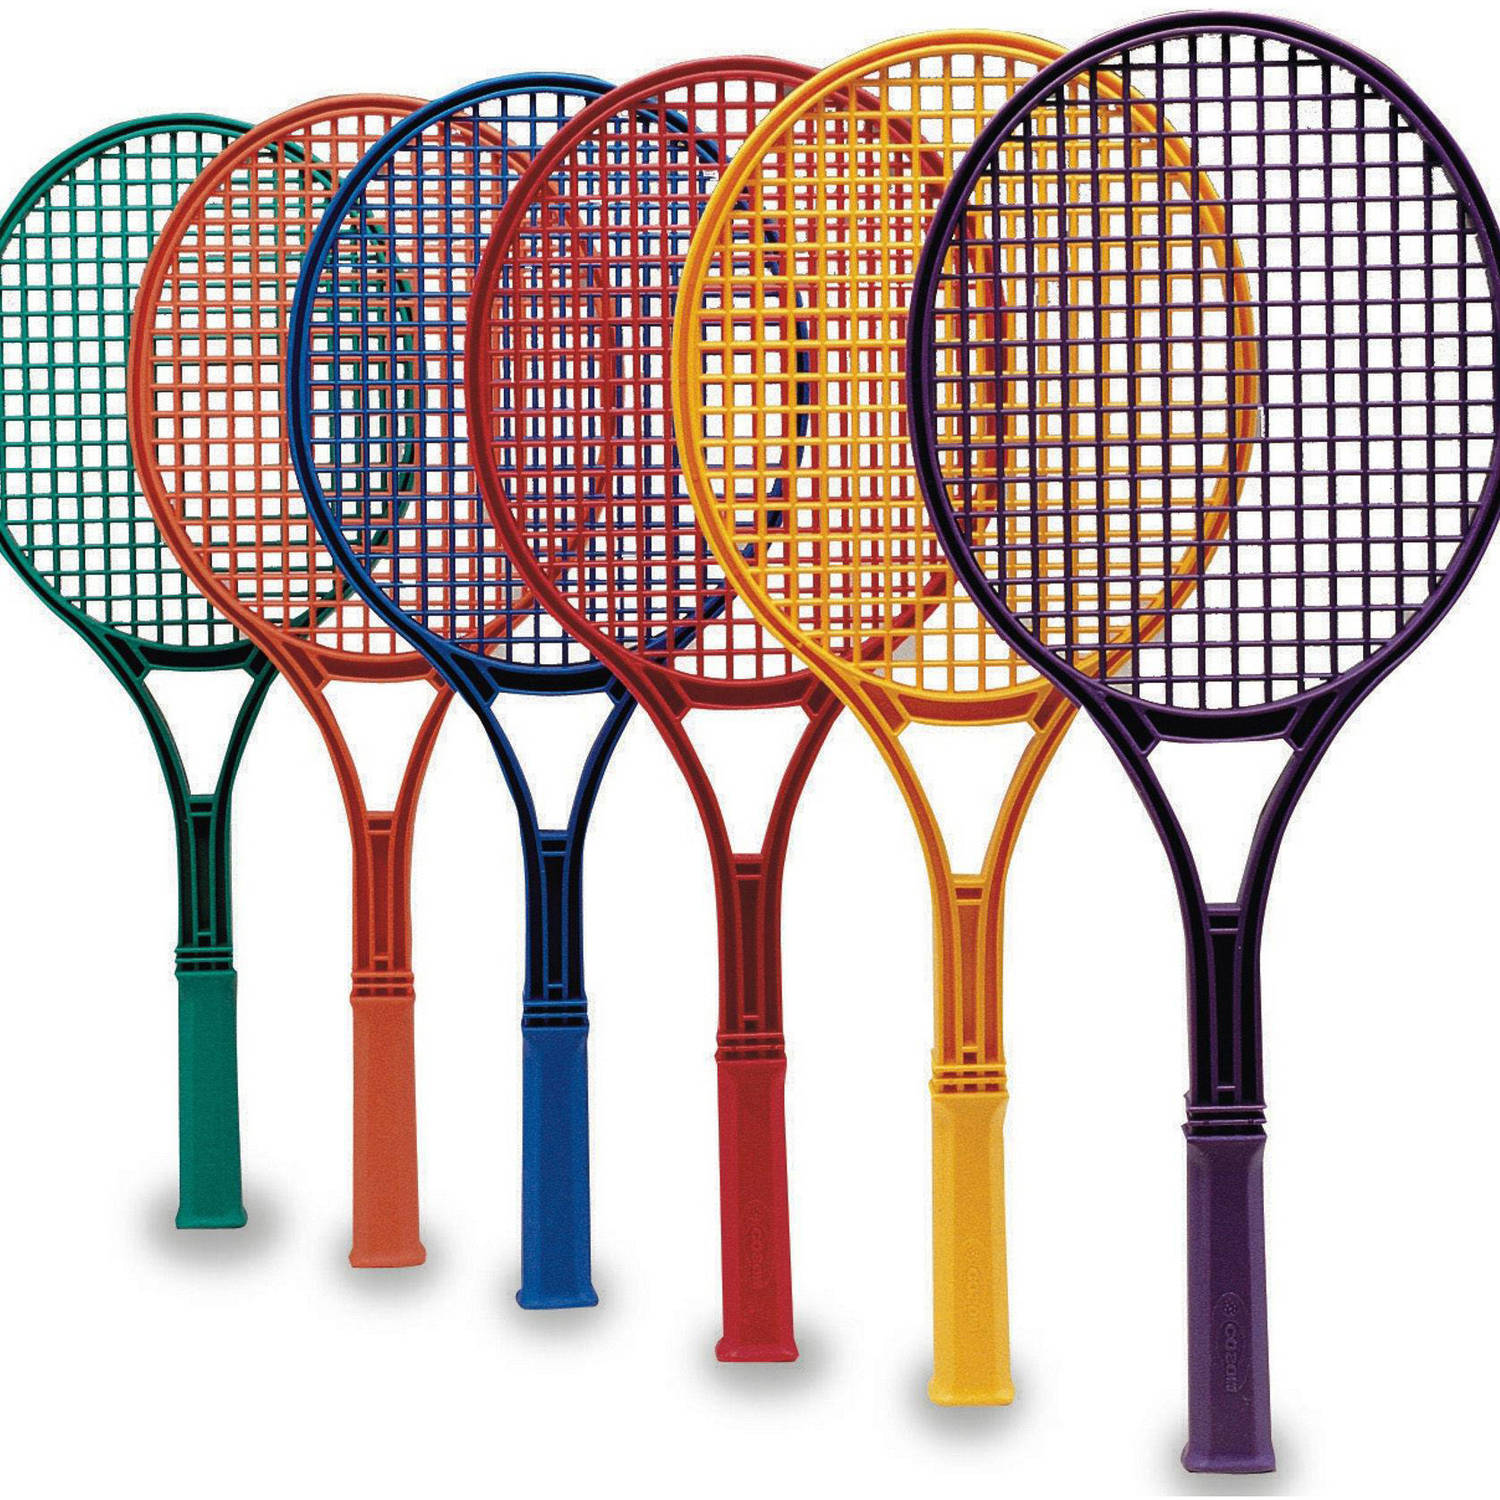 S&S Worldwide Spectrum Jr. Tennis Racquets, Set of 6 by S&S Worldwide